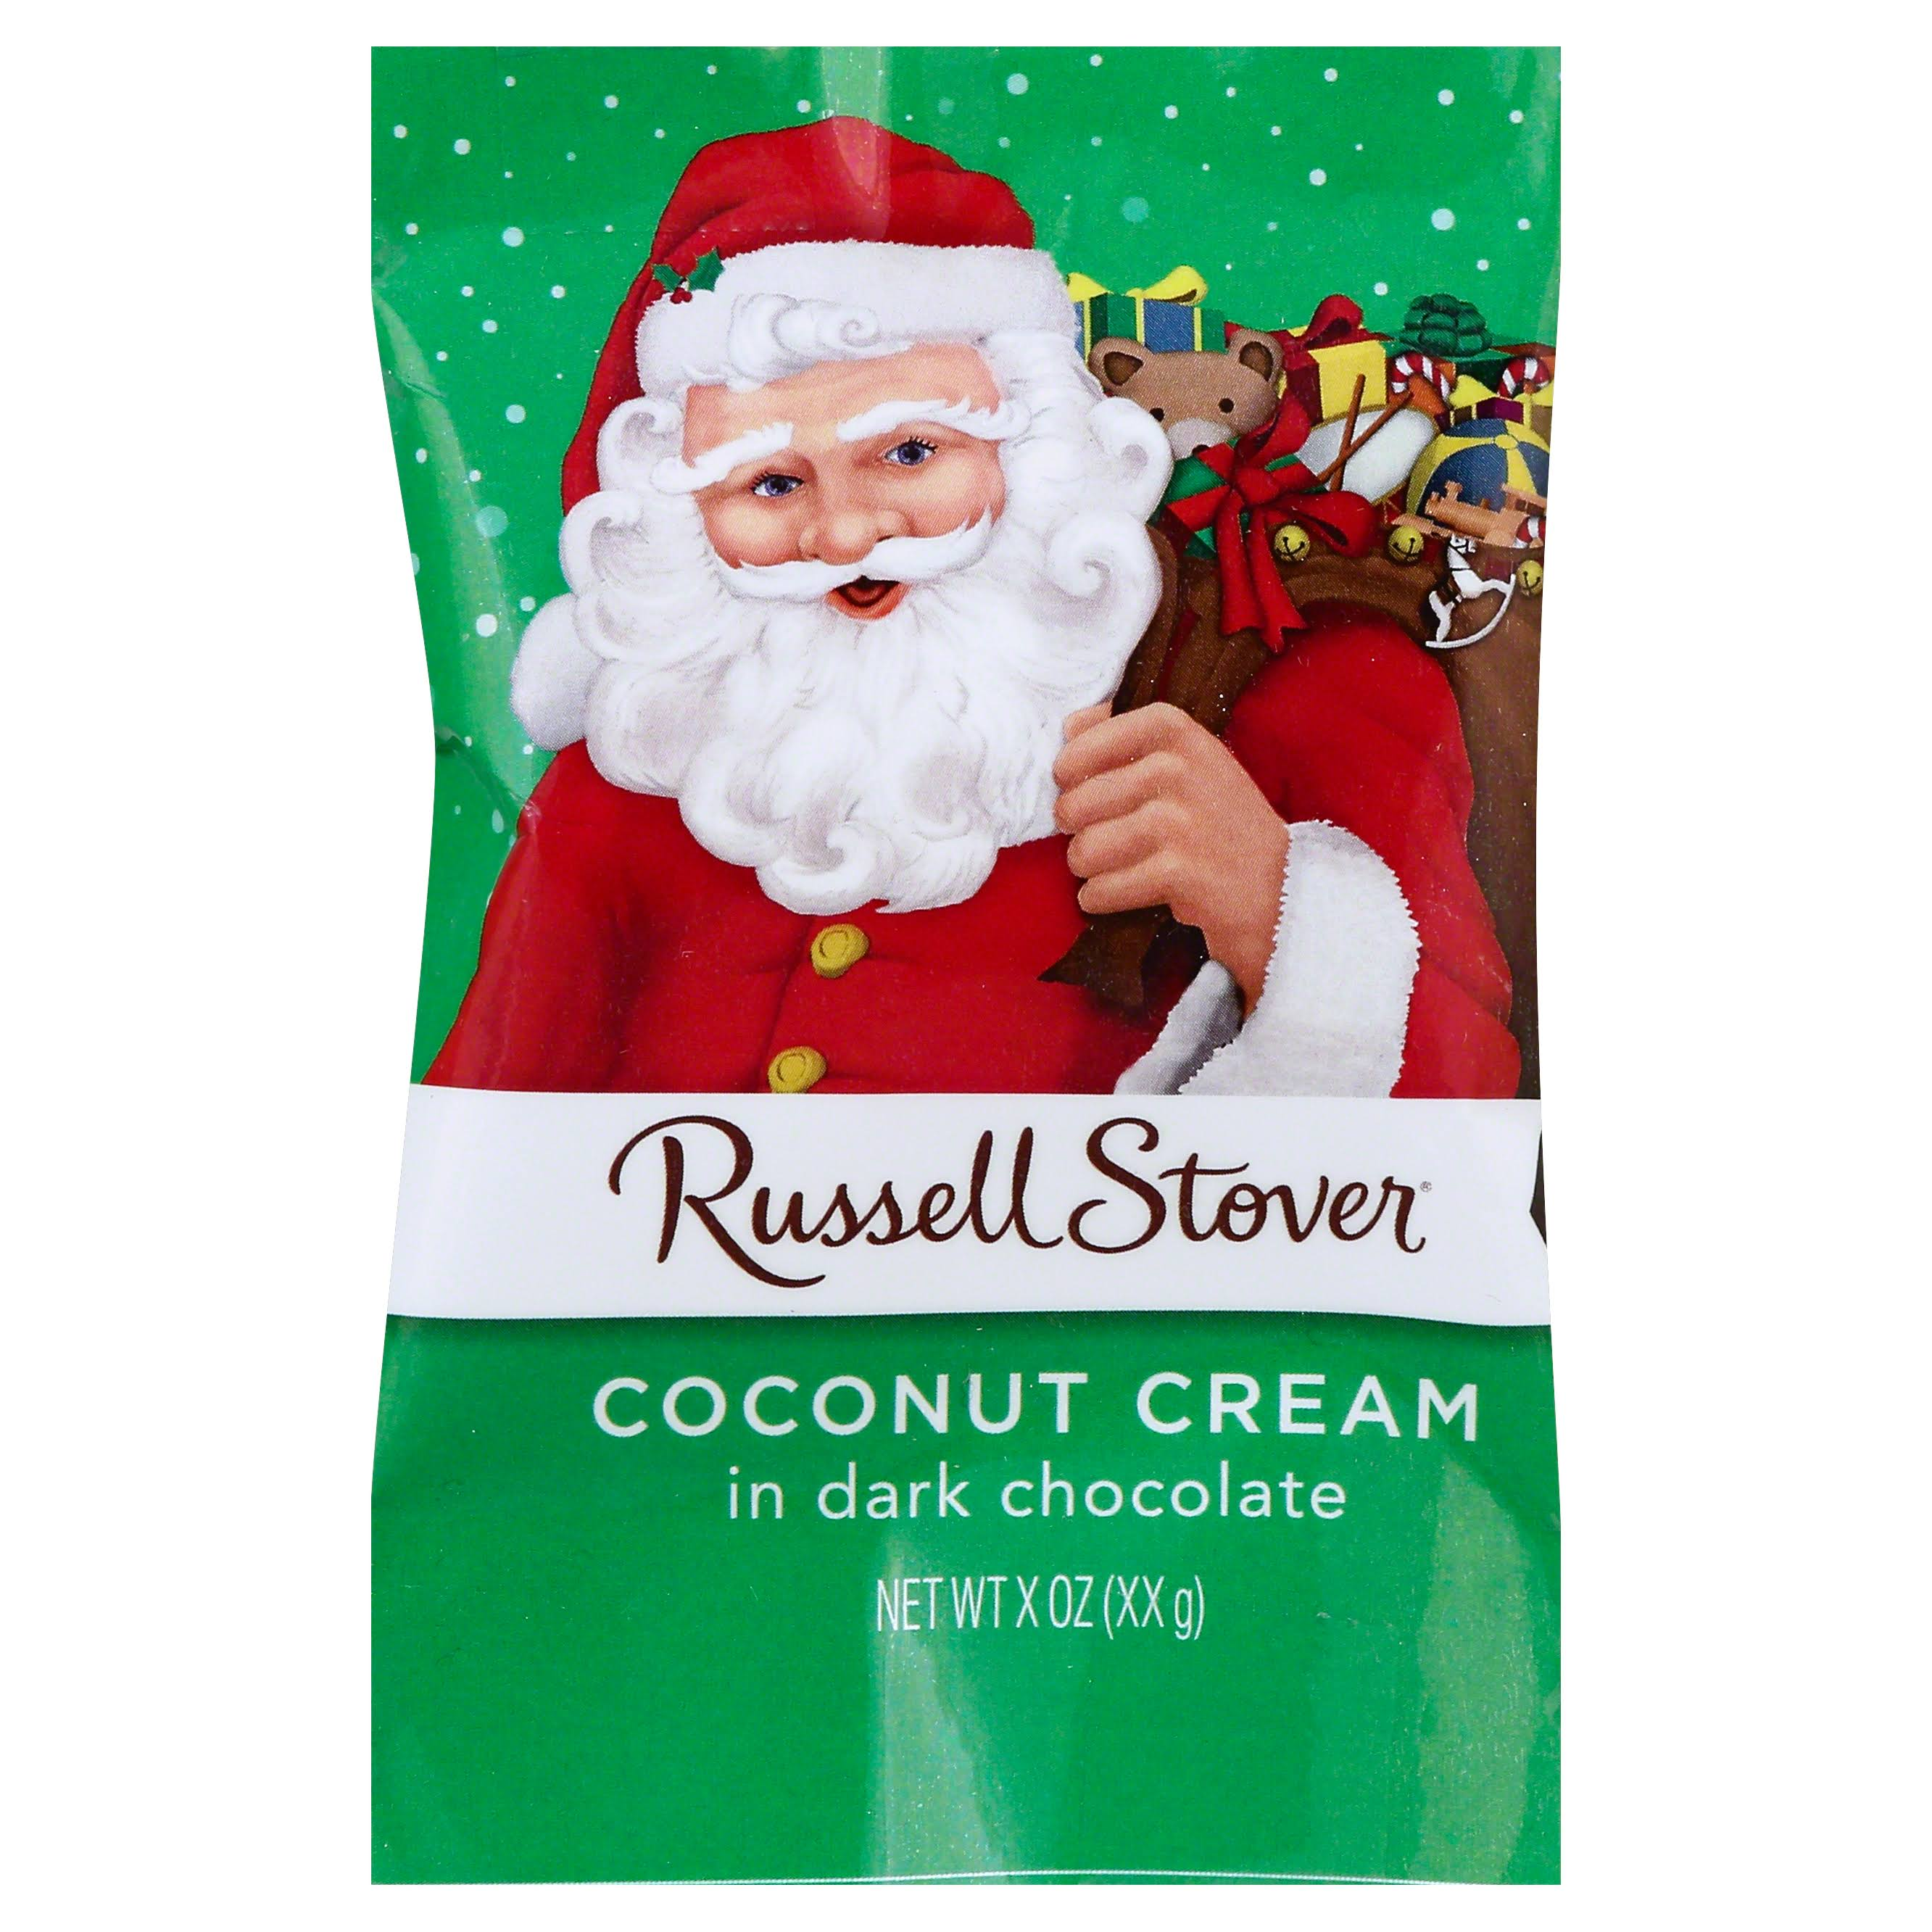 Russell Stover Coconut Cream, in Dark Chocolate